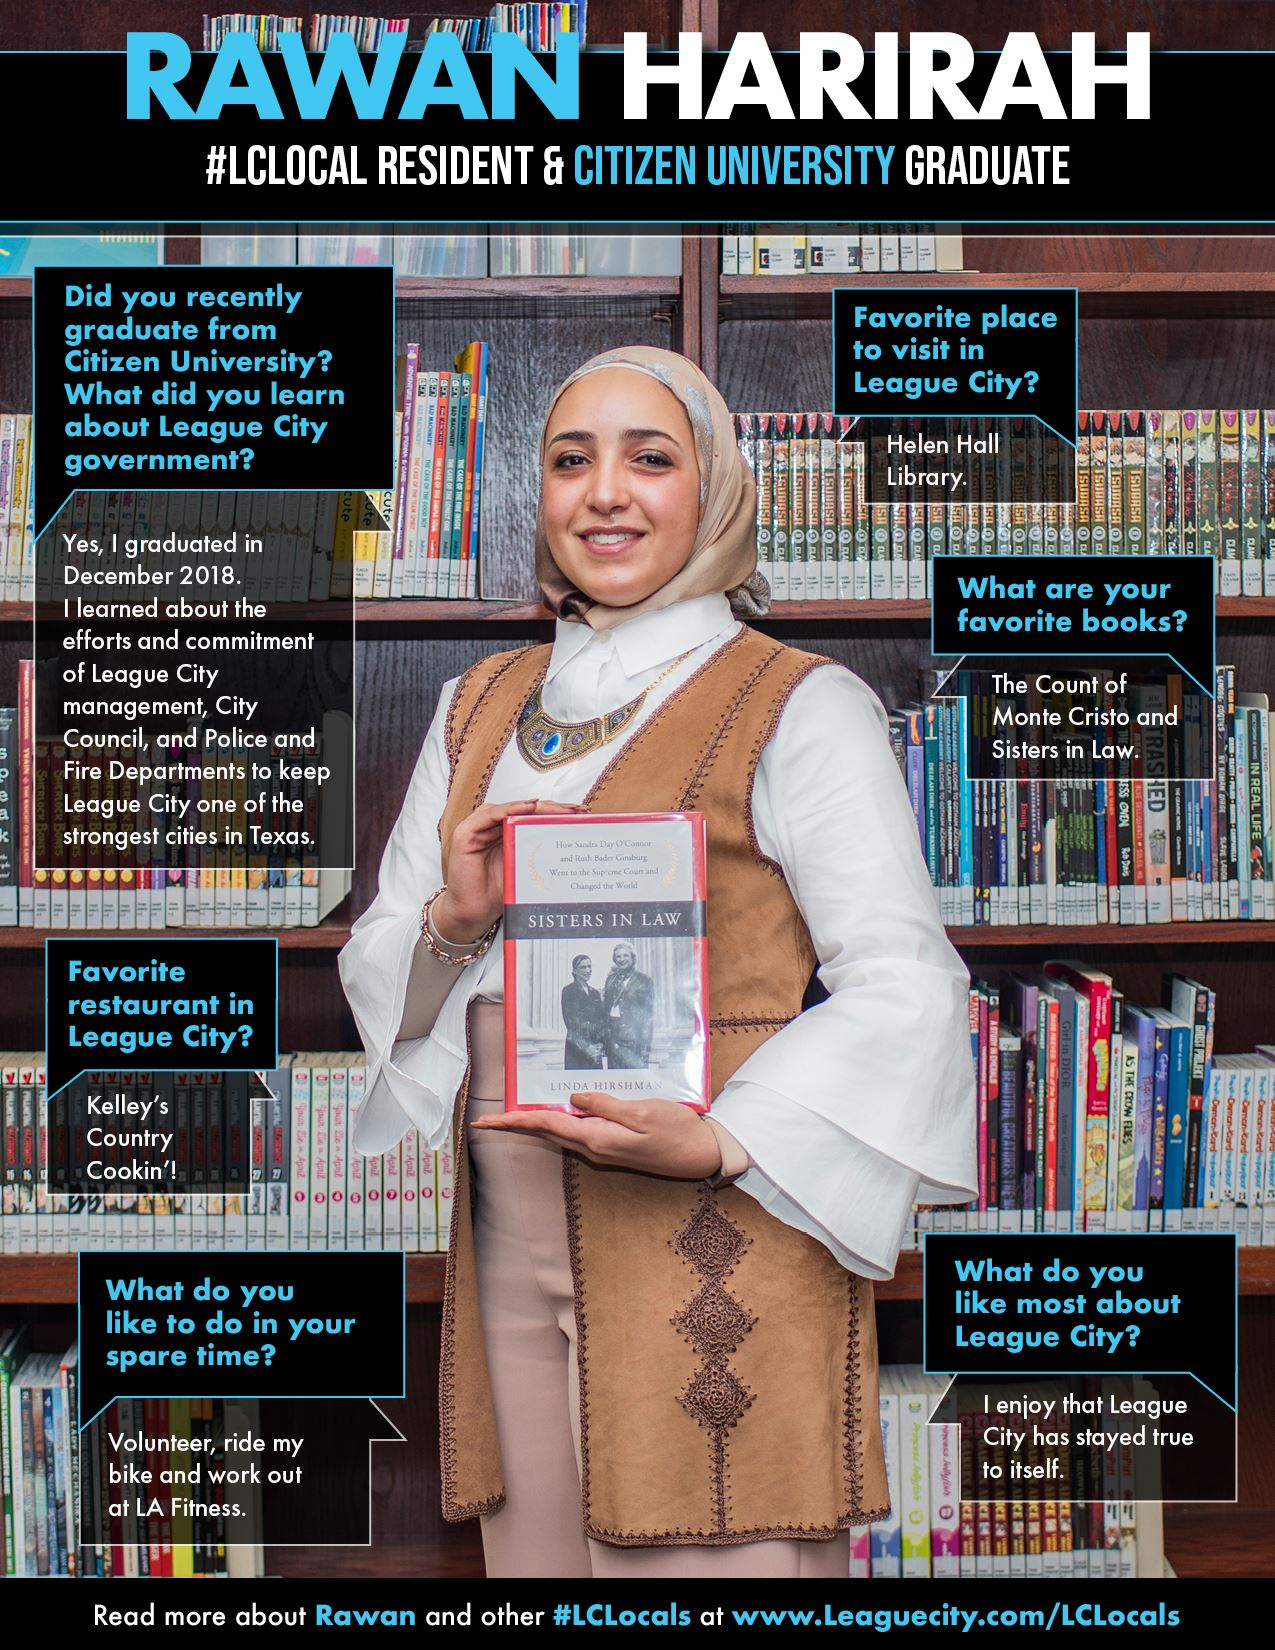 woman wearing a scarf posing with a book